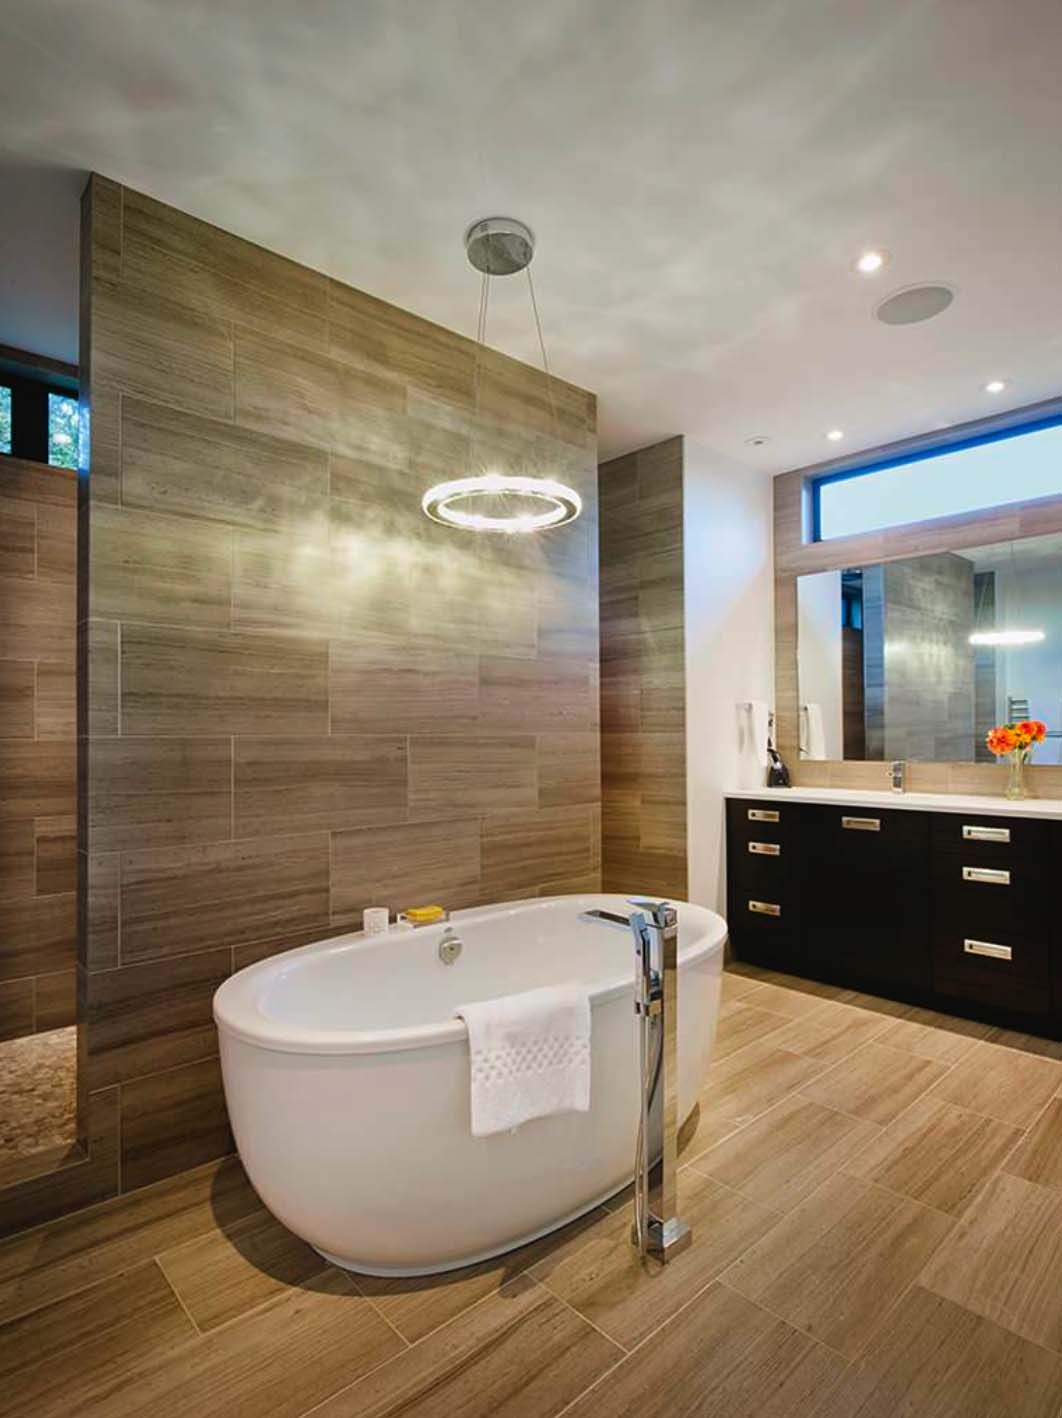 38 Amazing freestanding tubs for a bathroom